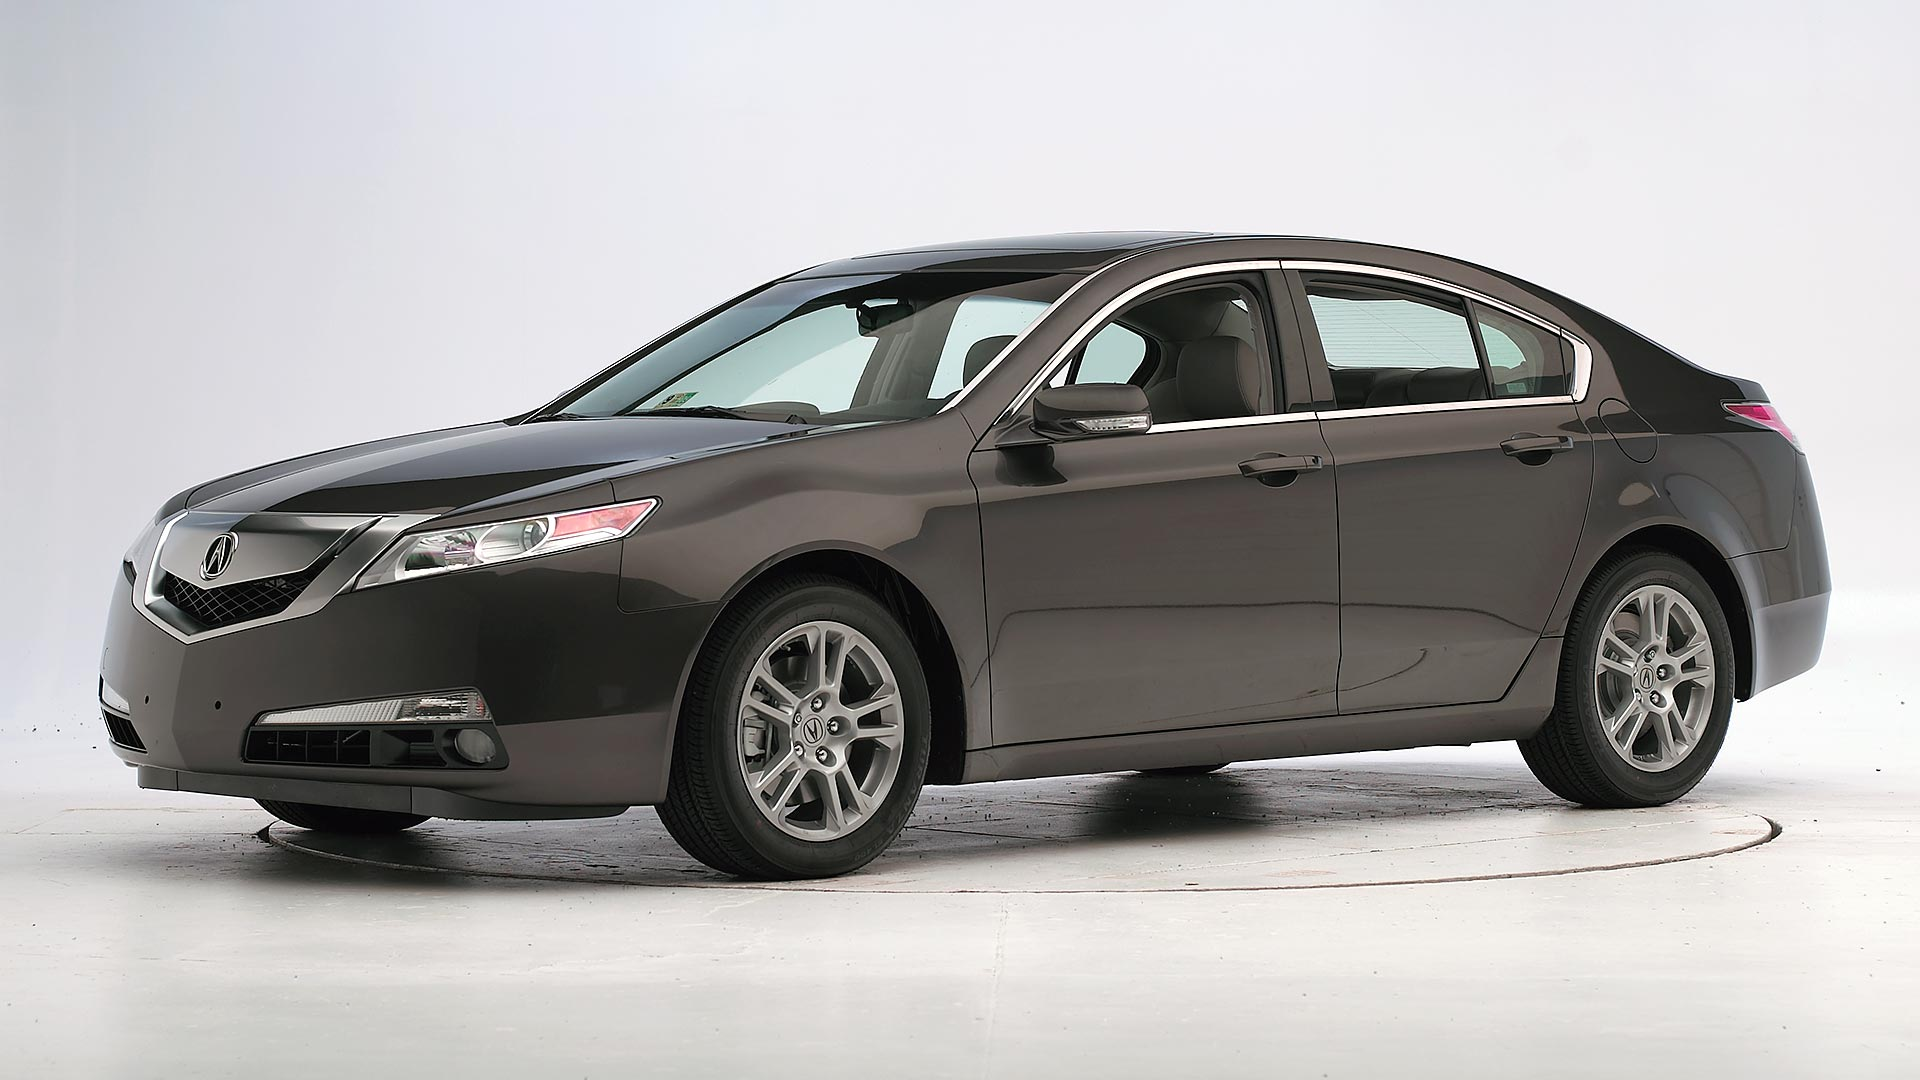 2011 Acura TL 4-door sedan